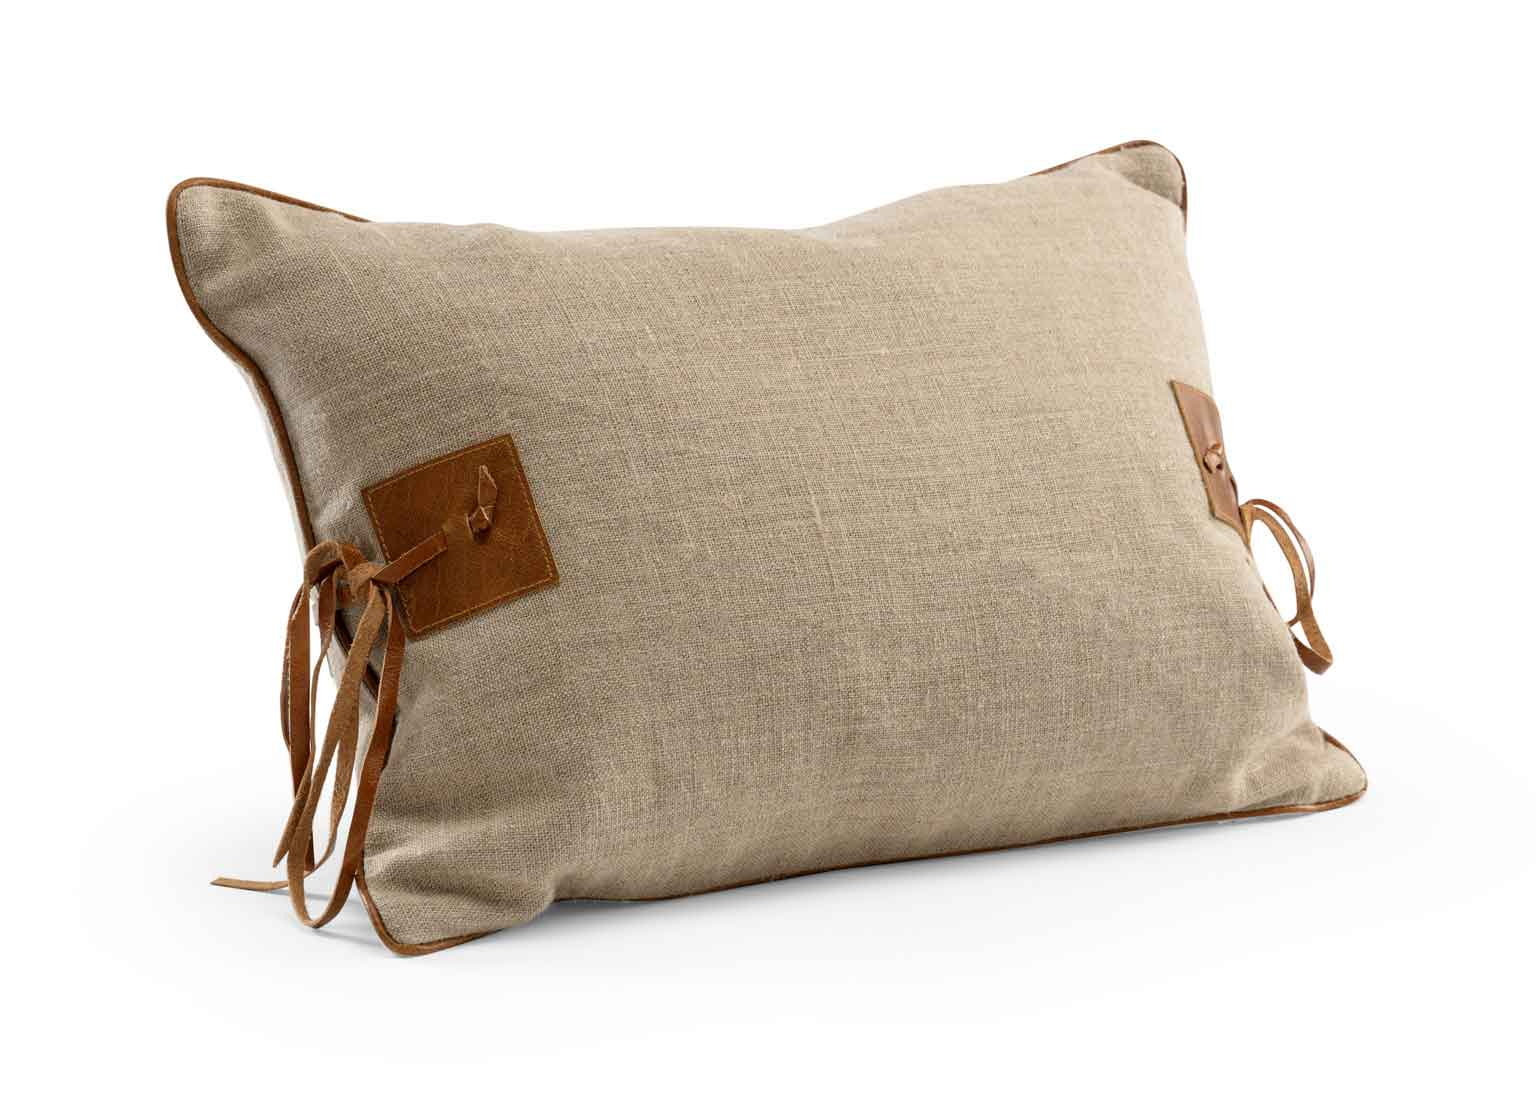 Buckaroo Pillow Southwest Rustic Decor Wildwood